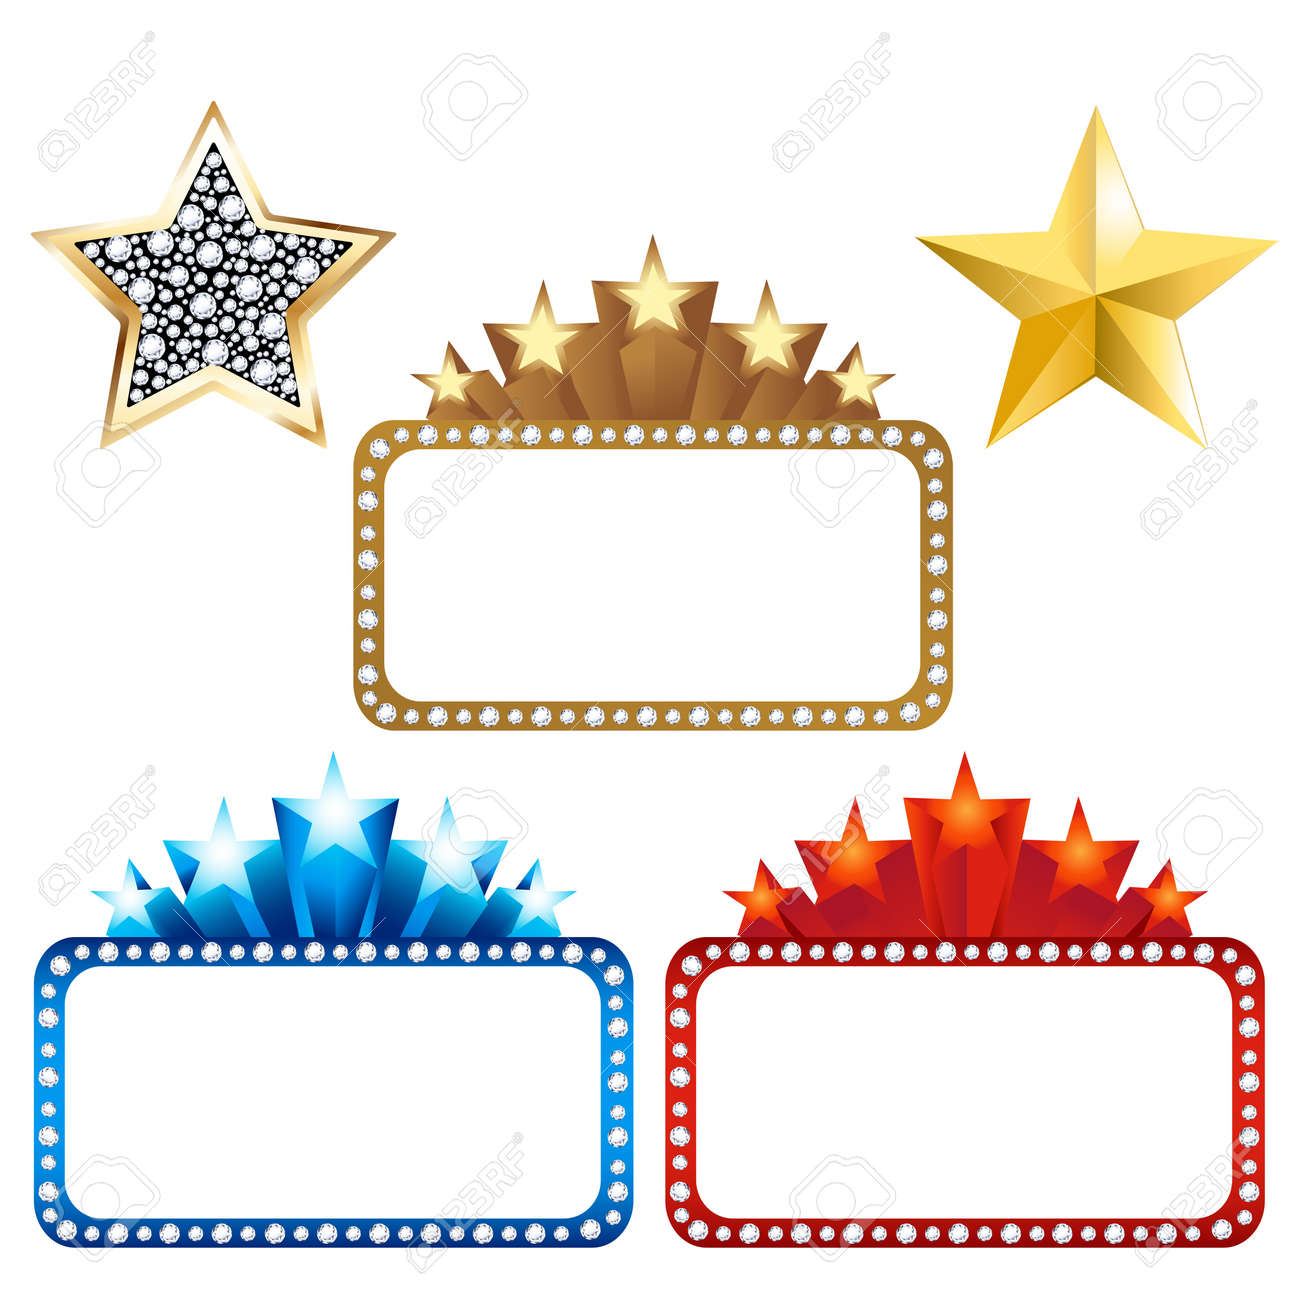 Broadway Lights Border Clipart With Stars And   clipart